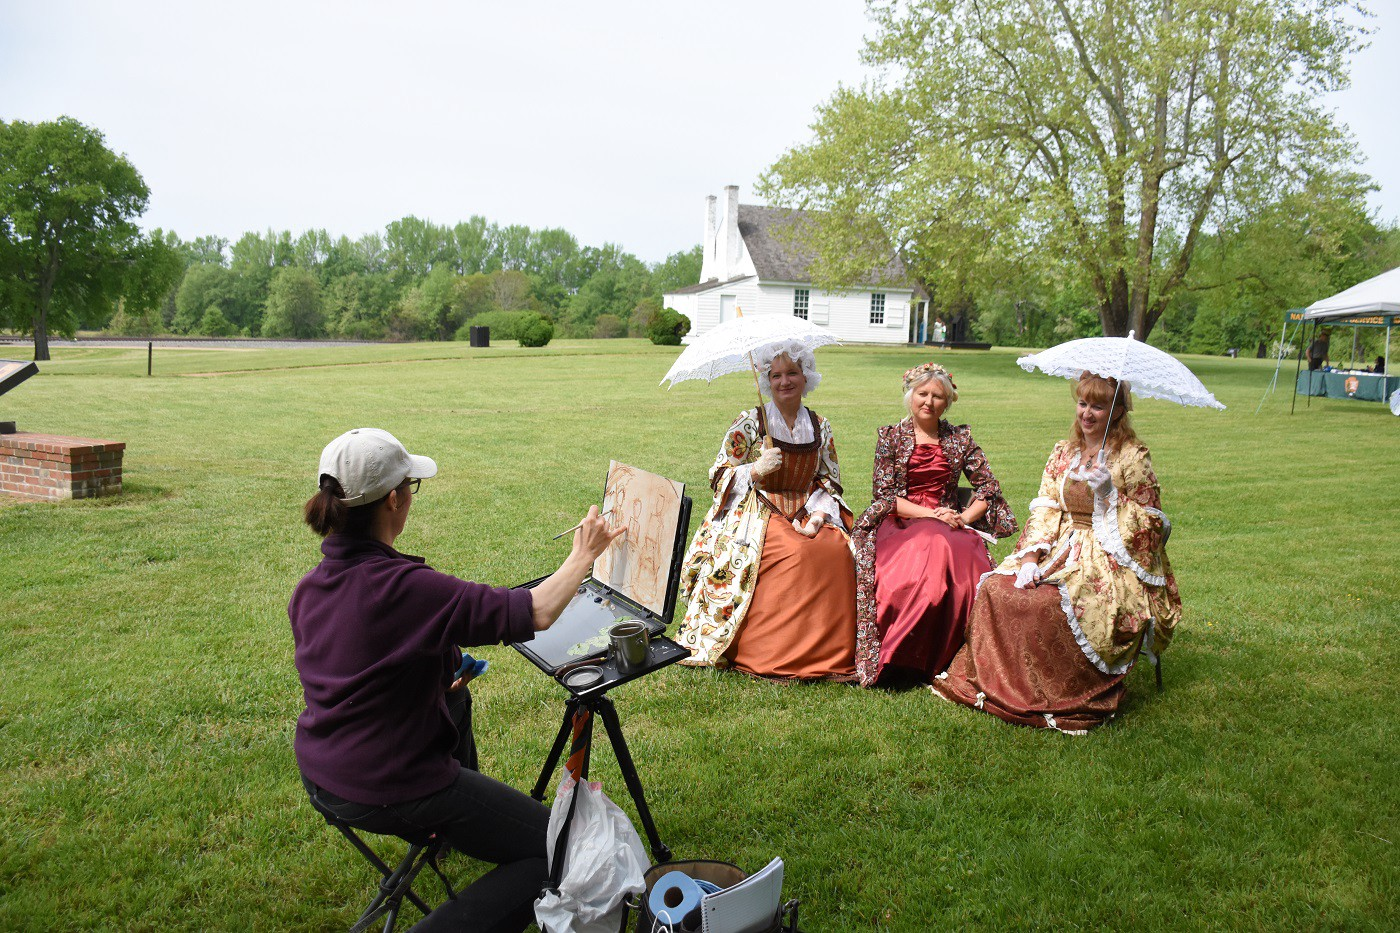 3 ladies dressed in Civil War era costumes sit while an artist paints their picture